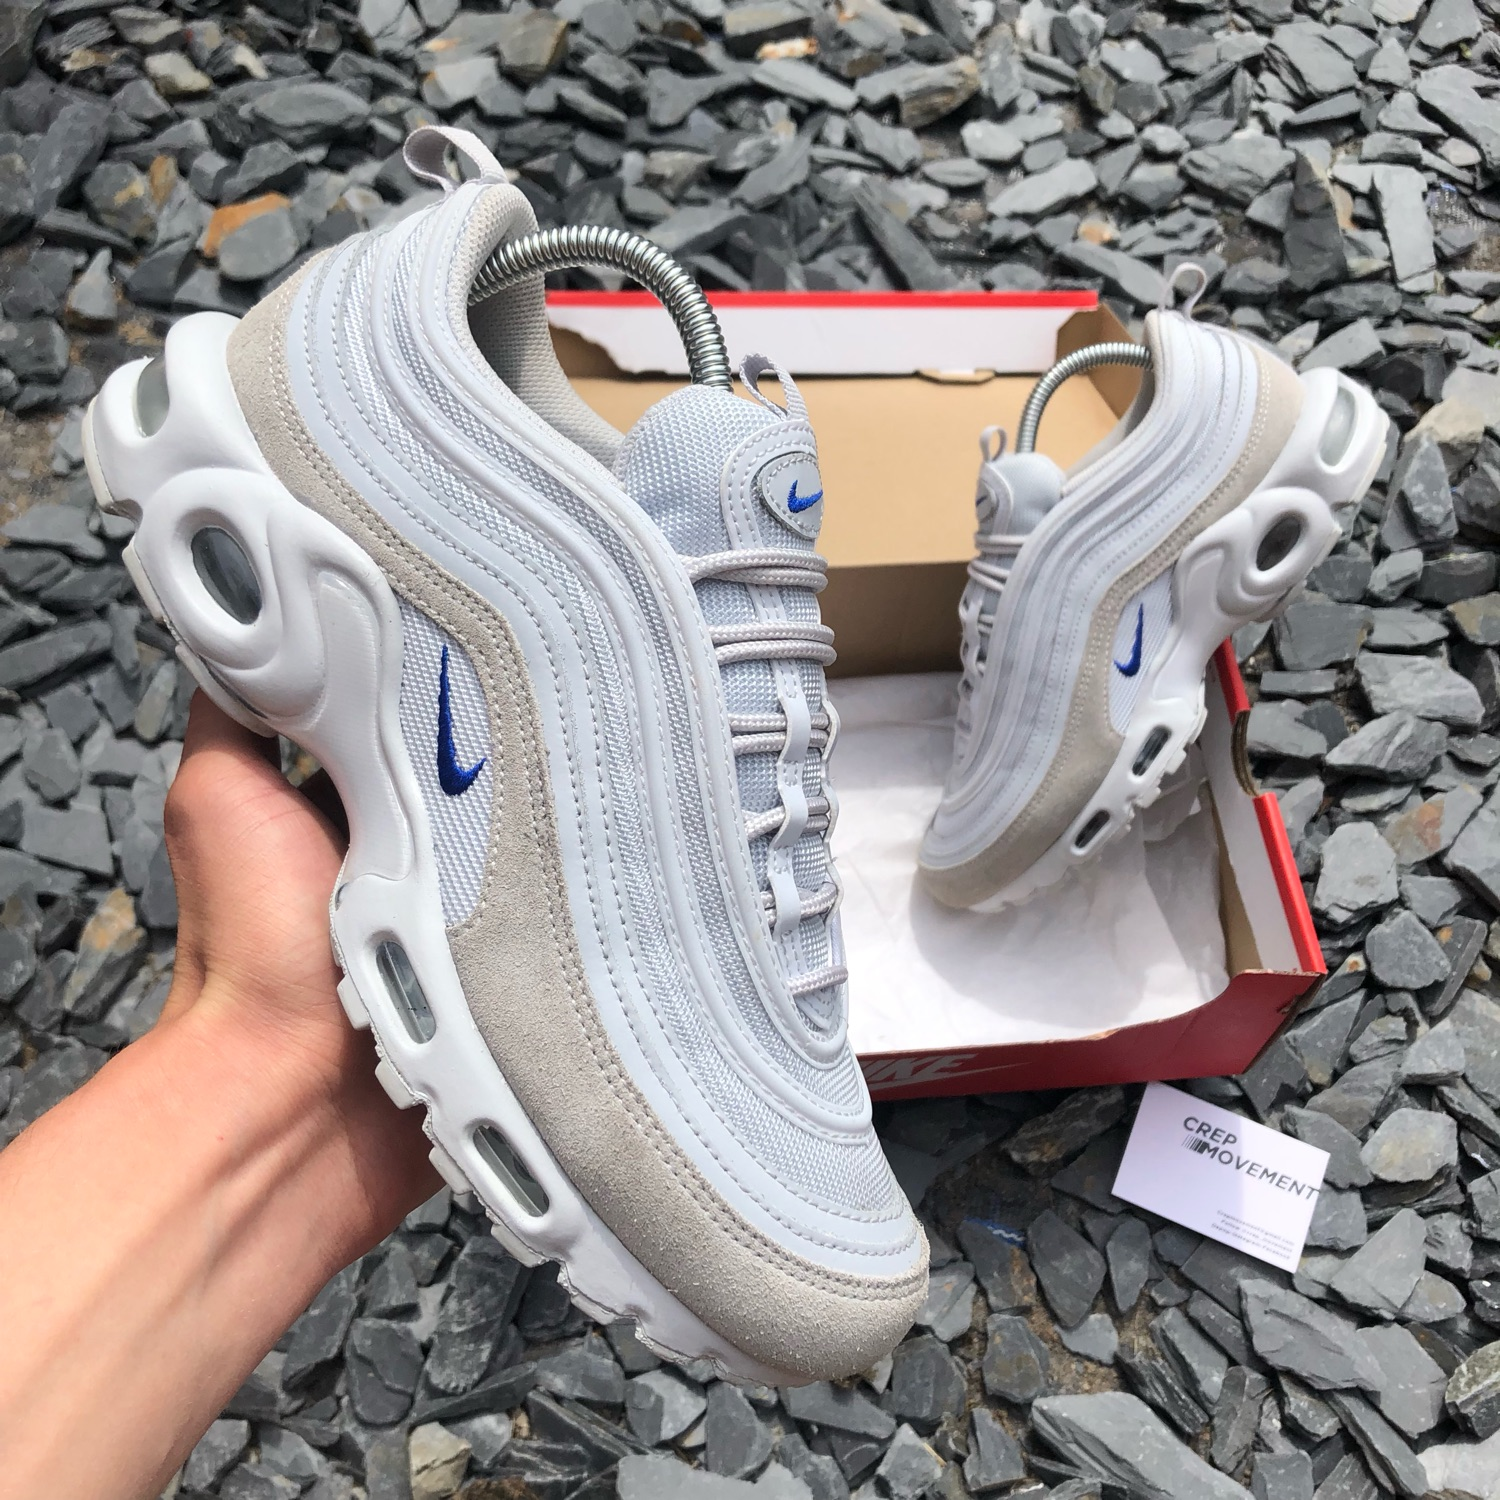 wholesale dealer ebe43 2c0f9 Nike Tuned 1 / Airmax 97 - Grey / Blue